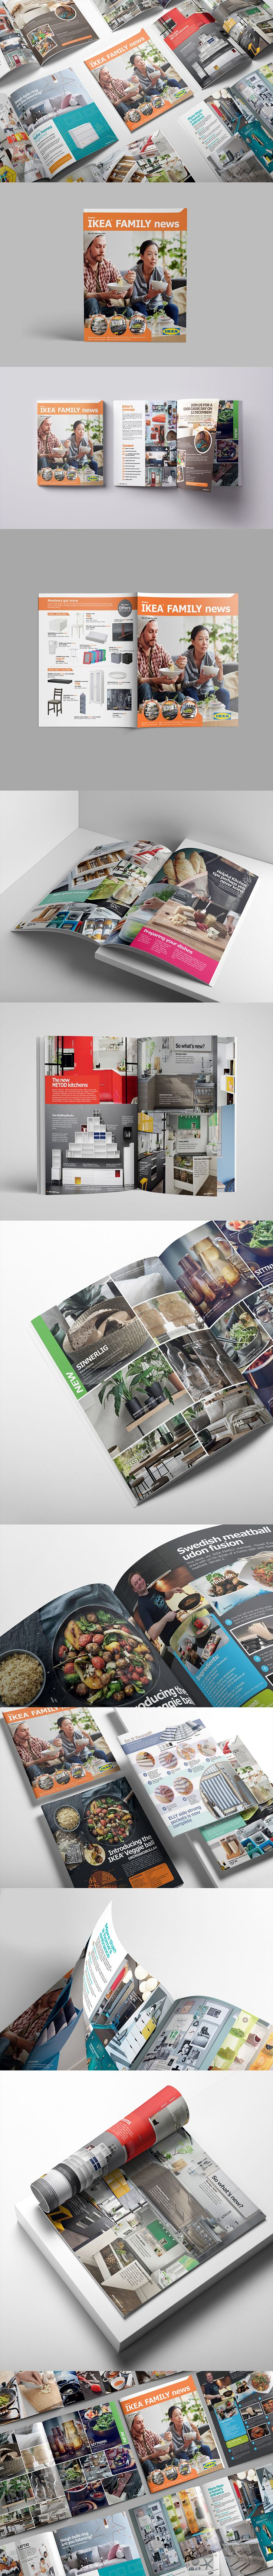 IKEA Family Newsletter Autumn  IKEA family news is a newsletter booklet for IKEA Family members. A free newsletter on home furnishings, FAMILY benefits, IKEA products and other news. The IKEA FAMILY newsletter is all about sharing functional and affordable home furnishing ideas and providing everyday value to your home.  #ikea #ikeafamily #IKEA #pdf #newsletter #layout #brochure #singapore #sg #book #autumn